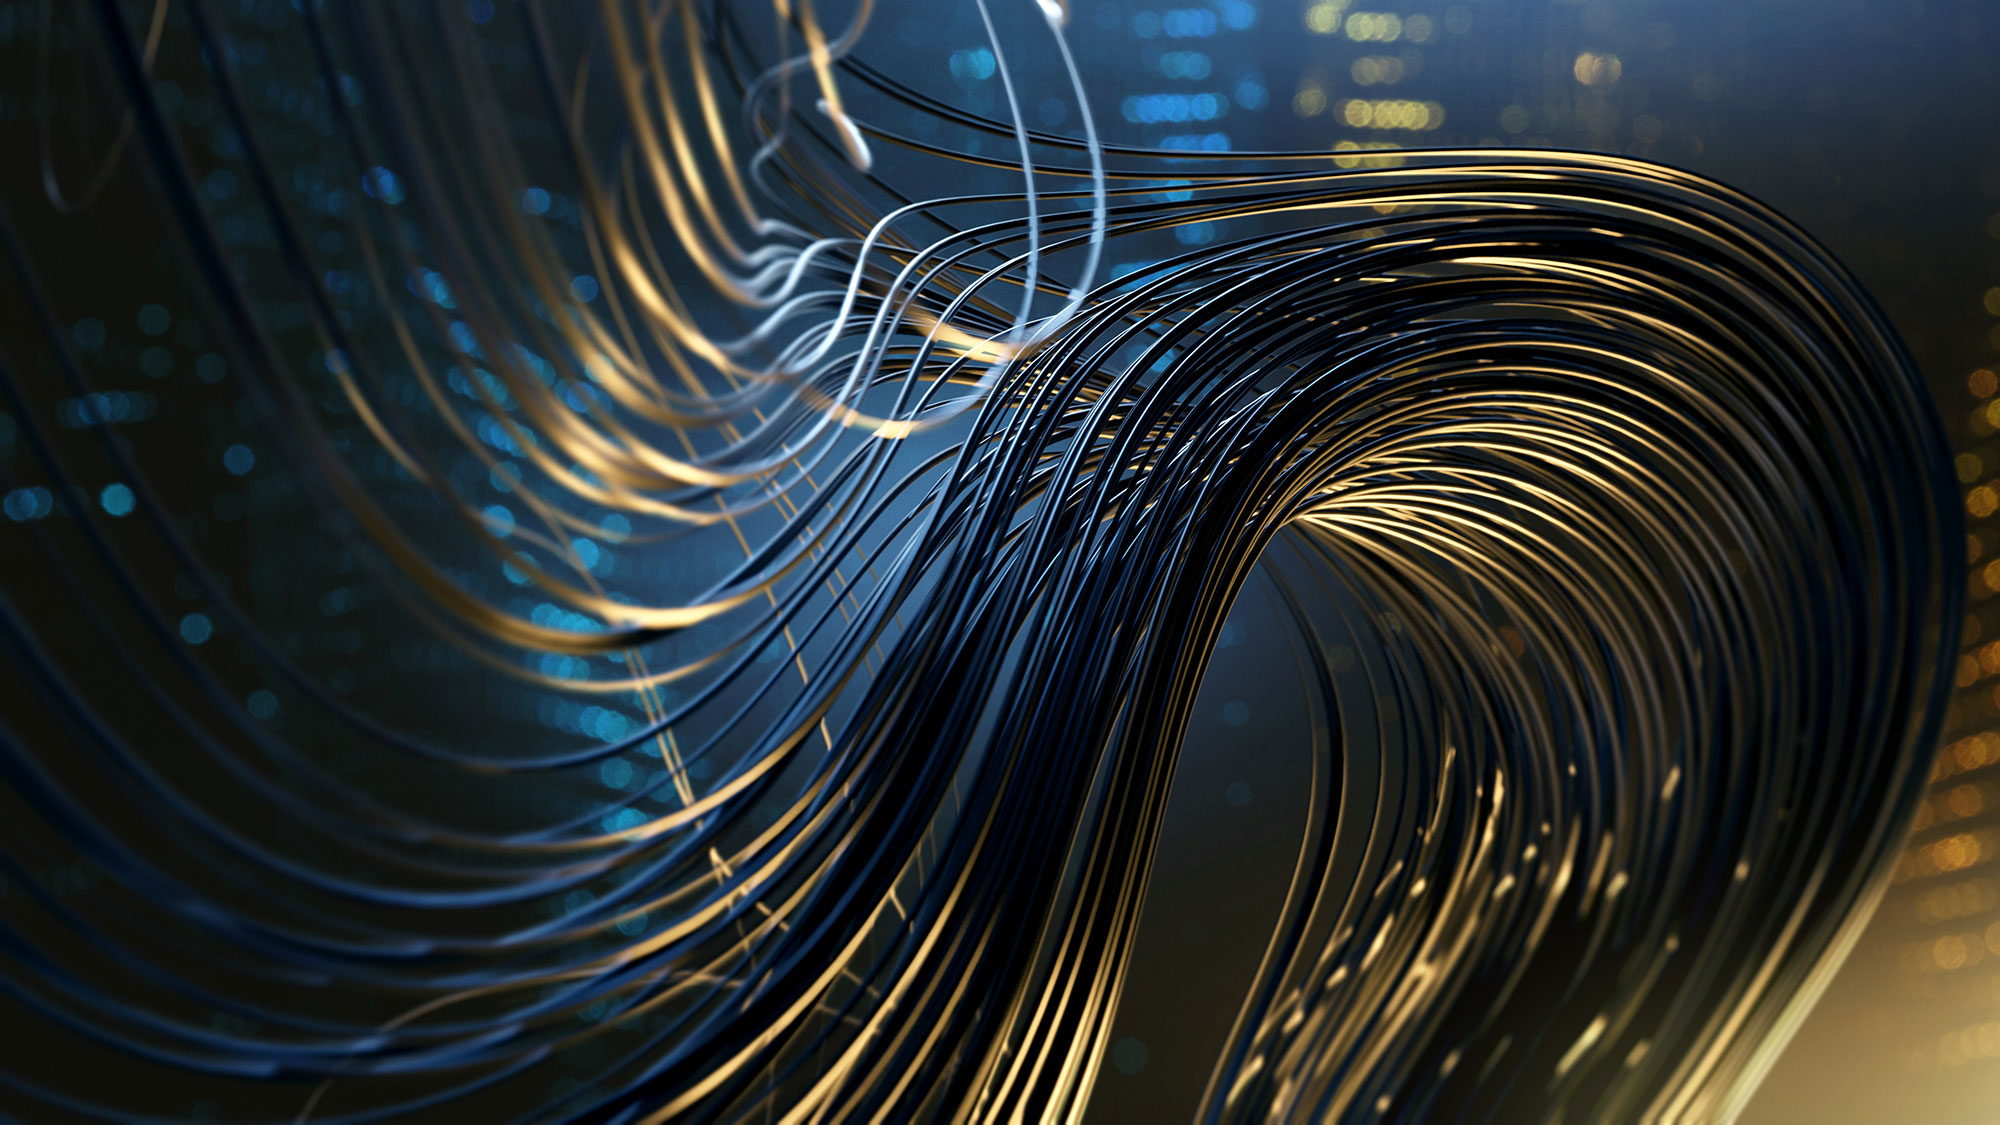 flowing wire photo